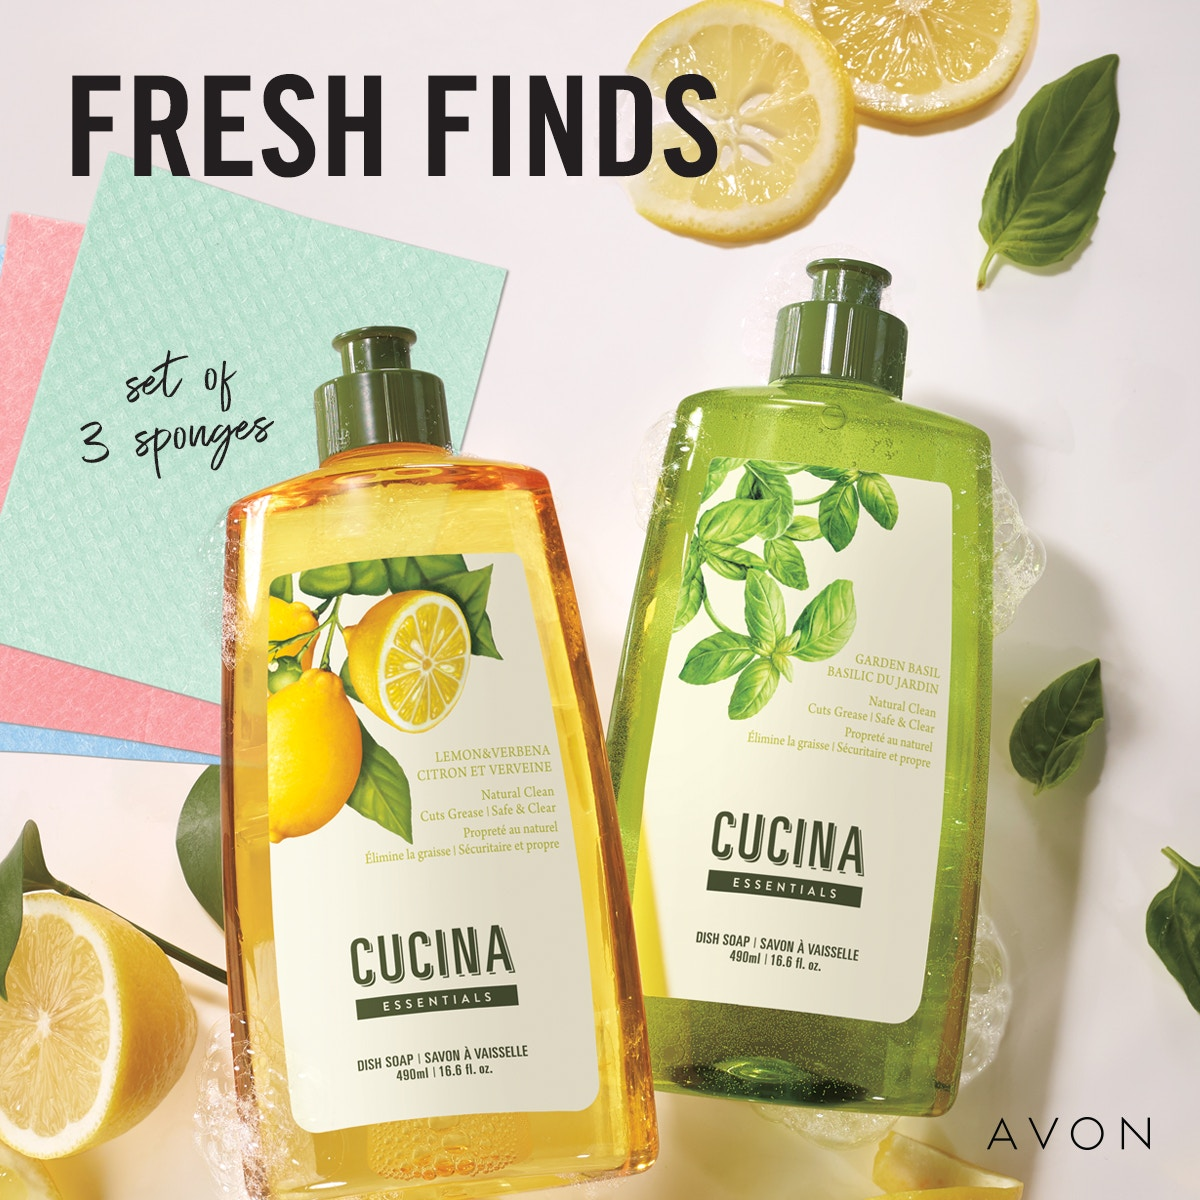 Fresh Finds #dishsoap #dishsponges #kitchen